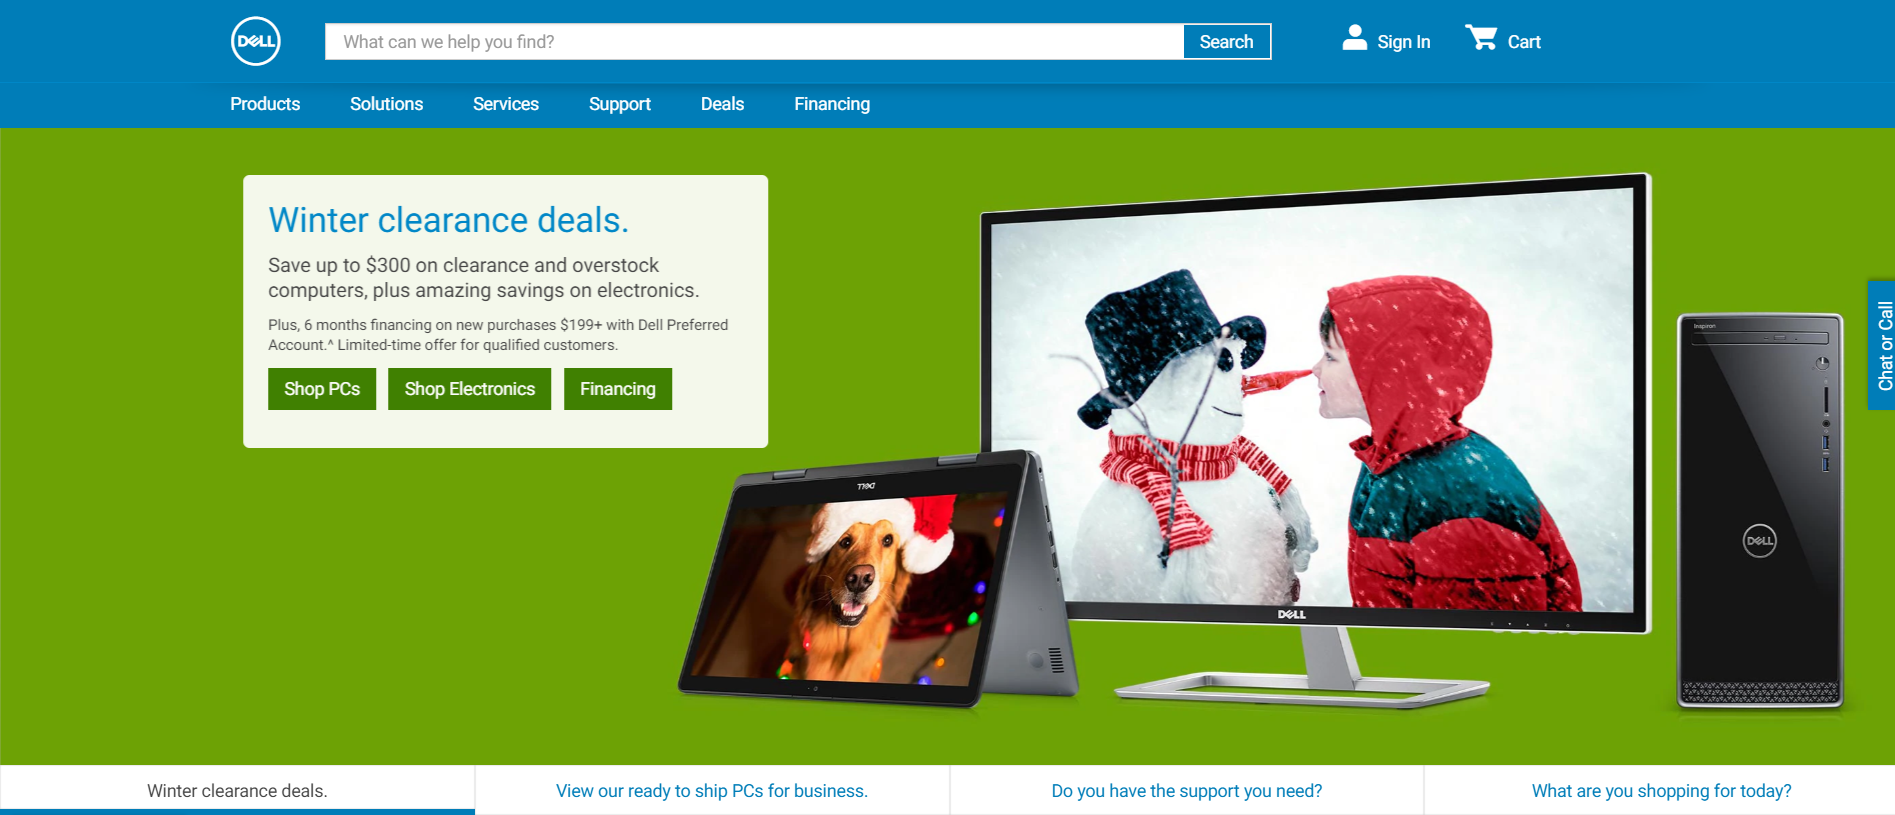 Dell Christmas Sales